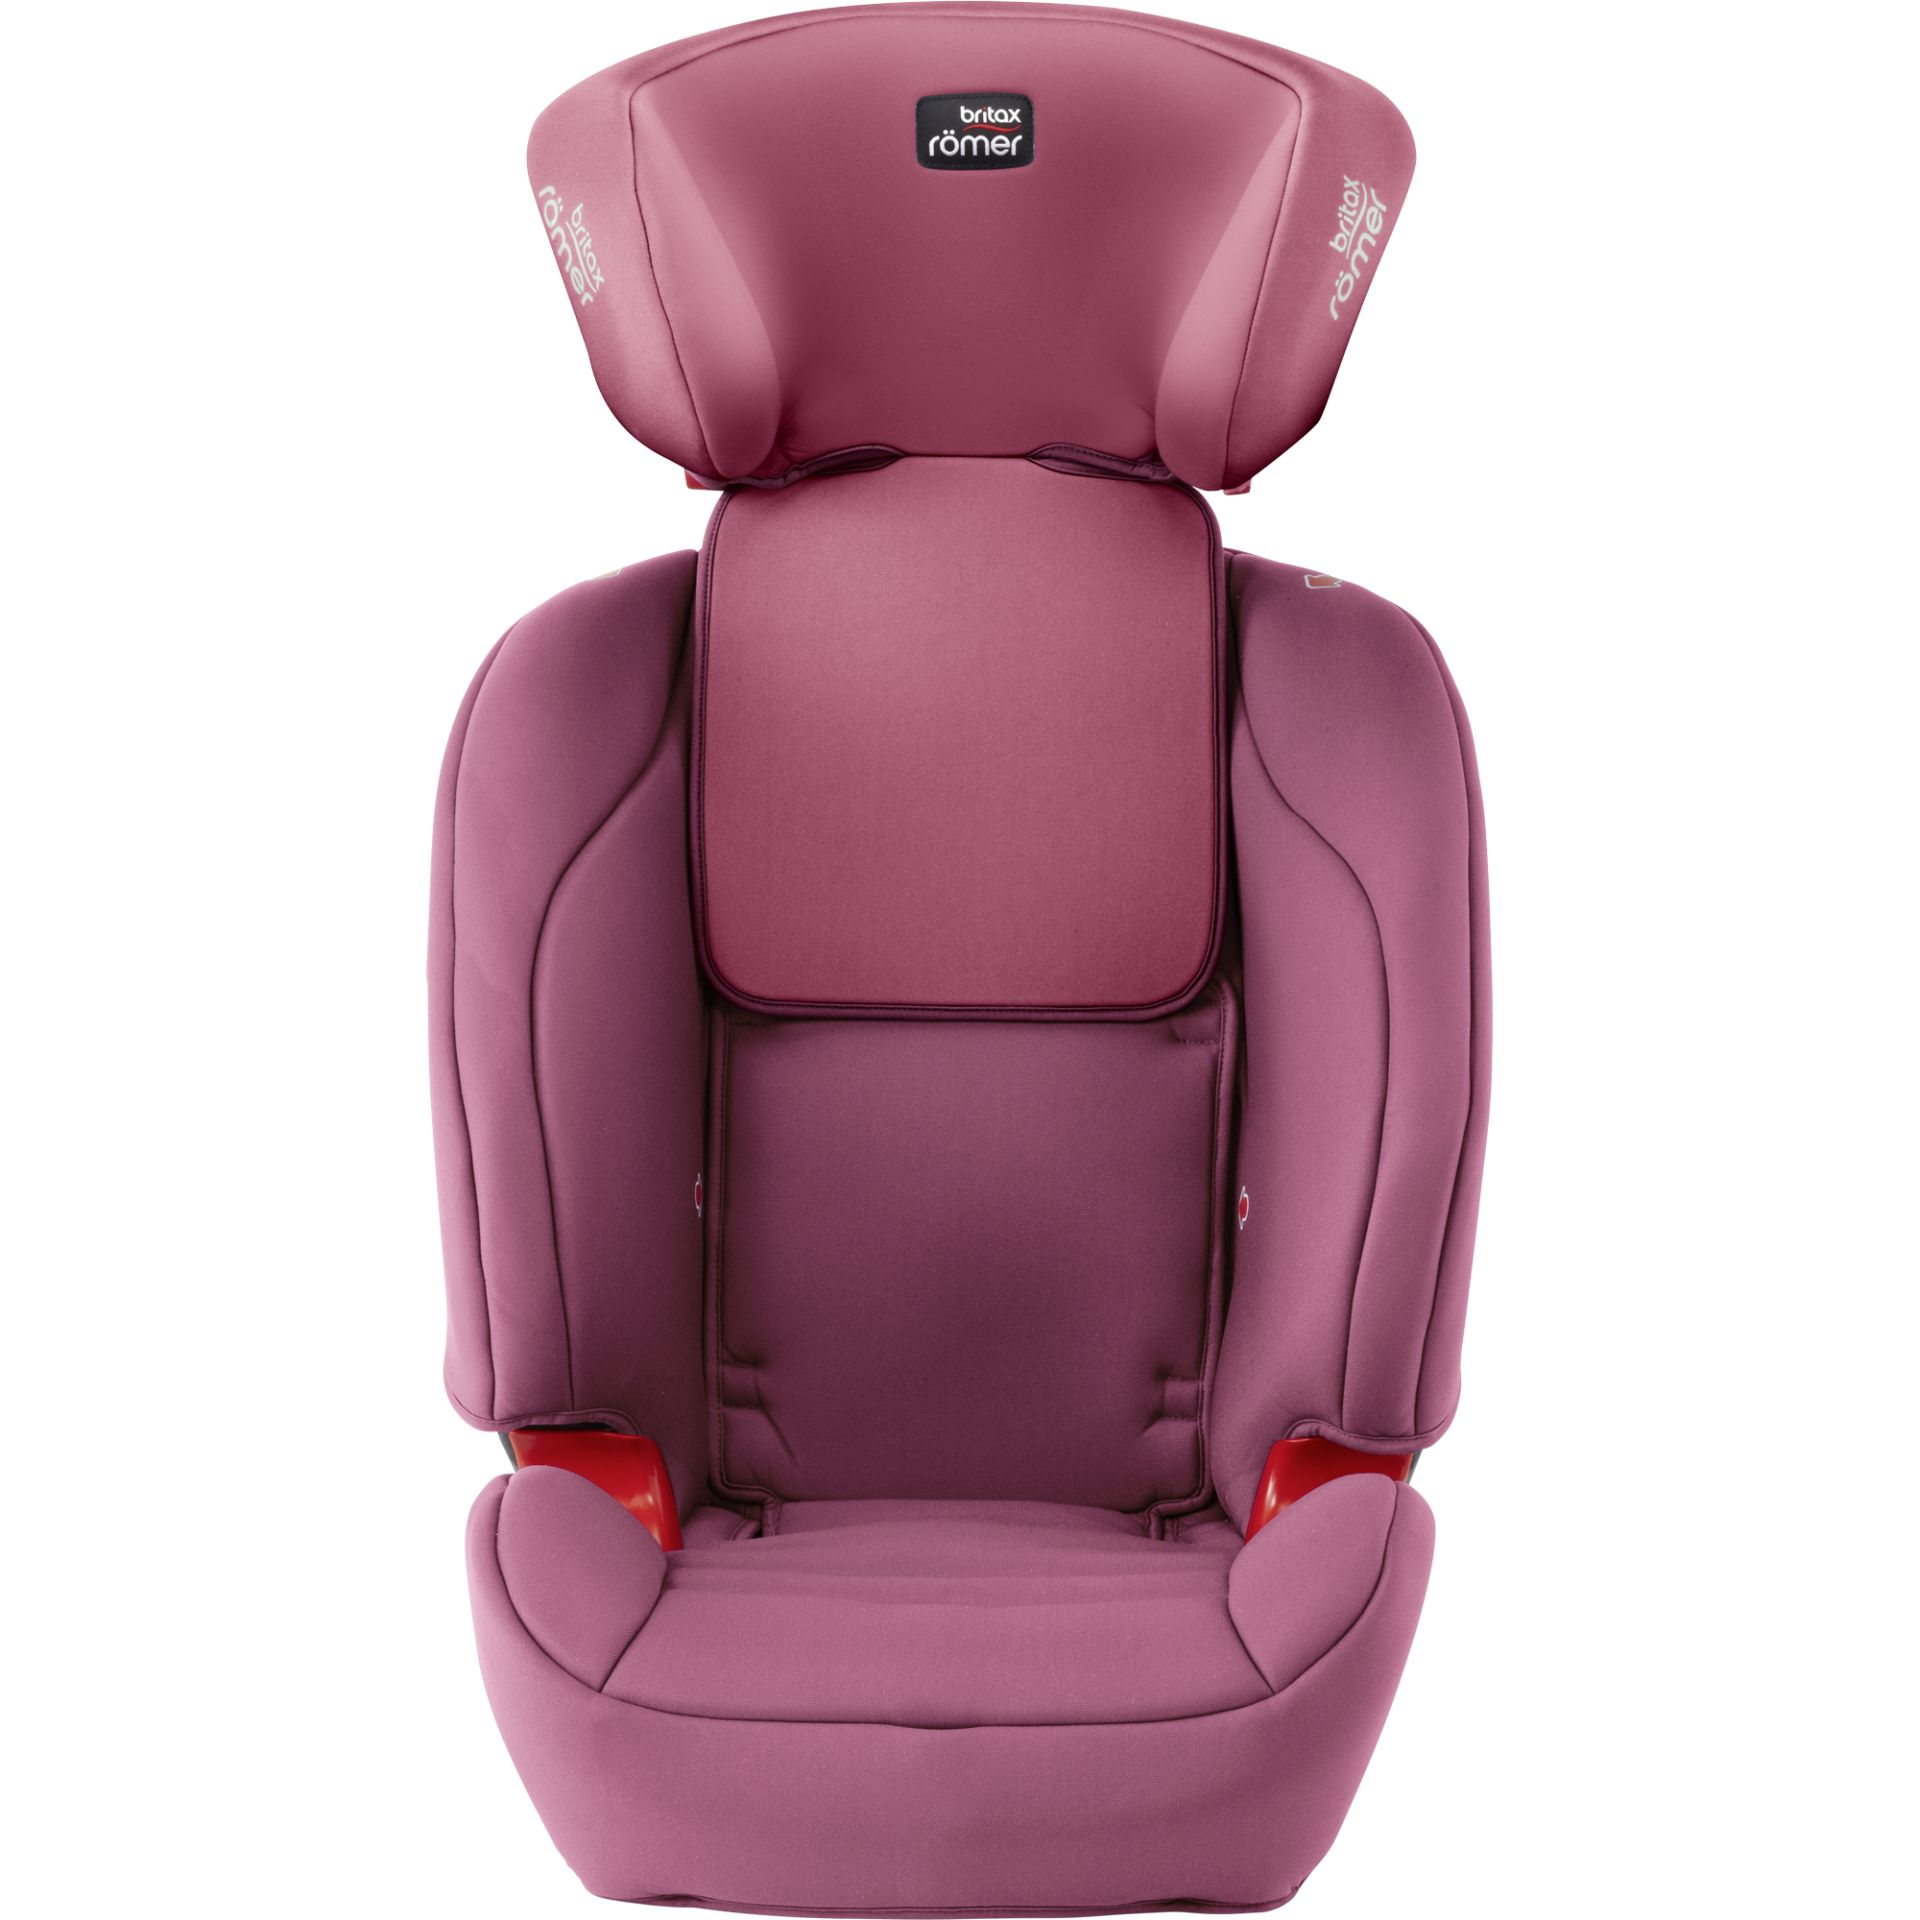 britax r mer evolva 1 2 3 sl sict isofix 2018 wine rose buy at kidsroom car seats. Black Bedroom Furniture Sets. Home Design Ideas